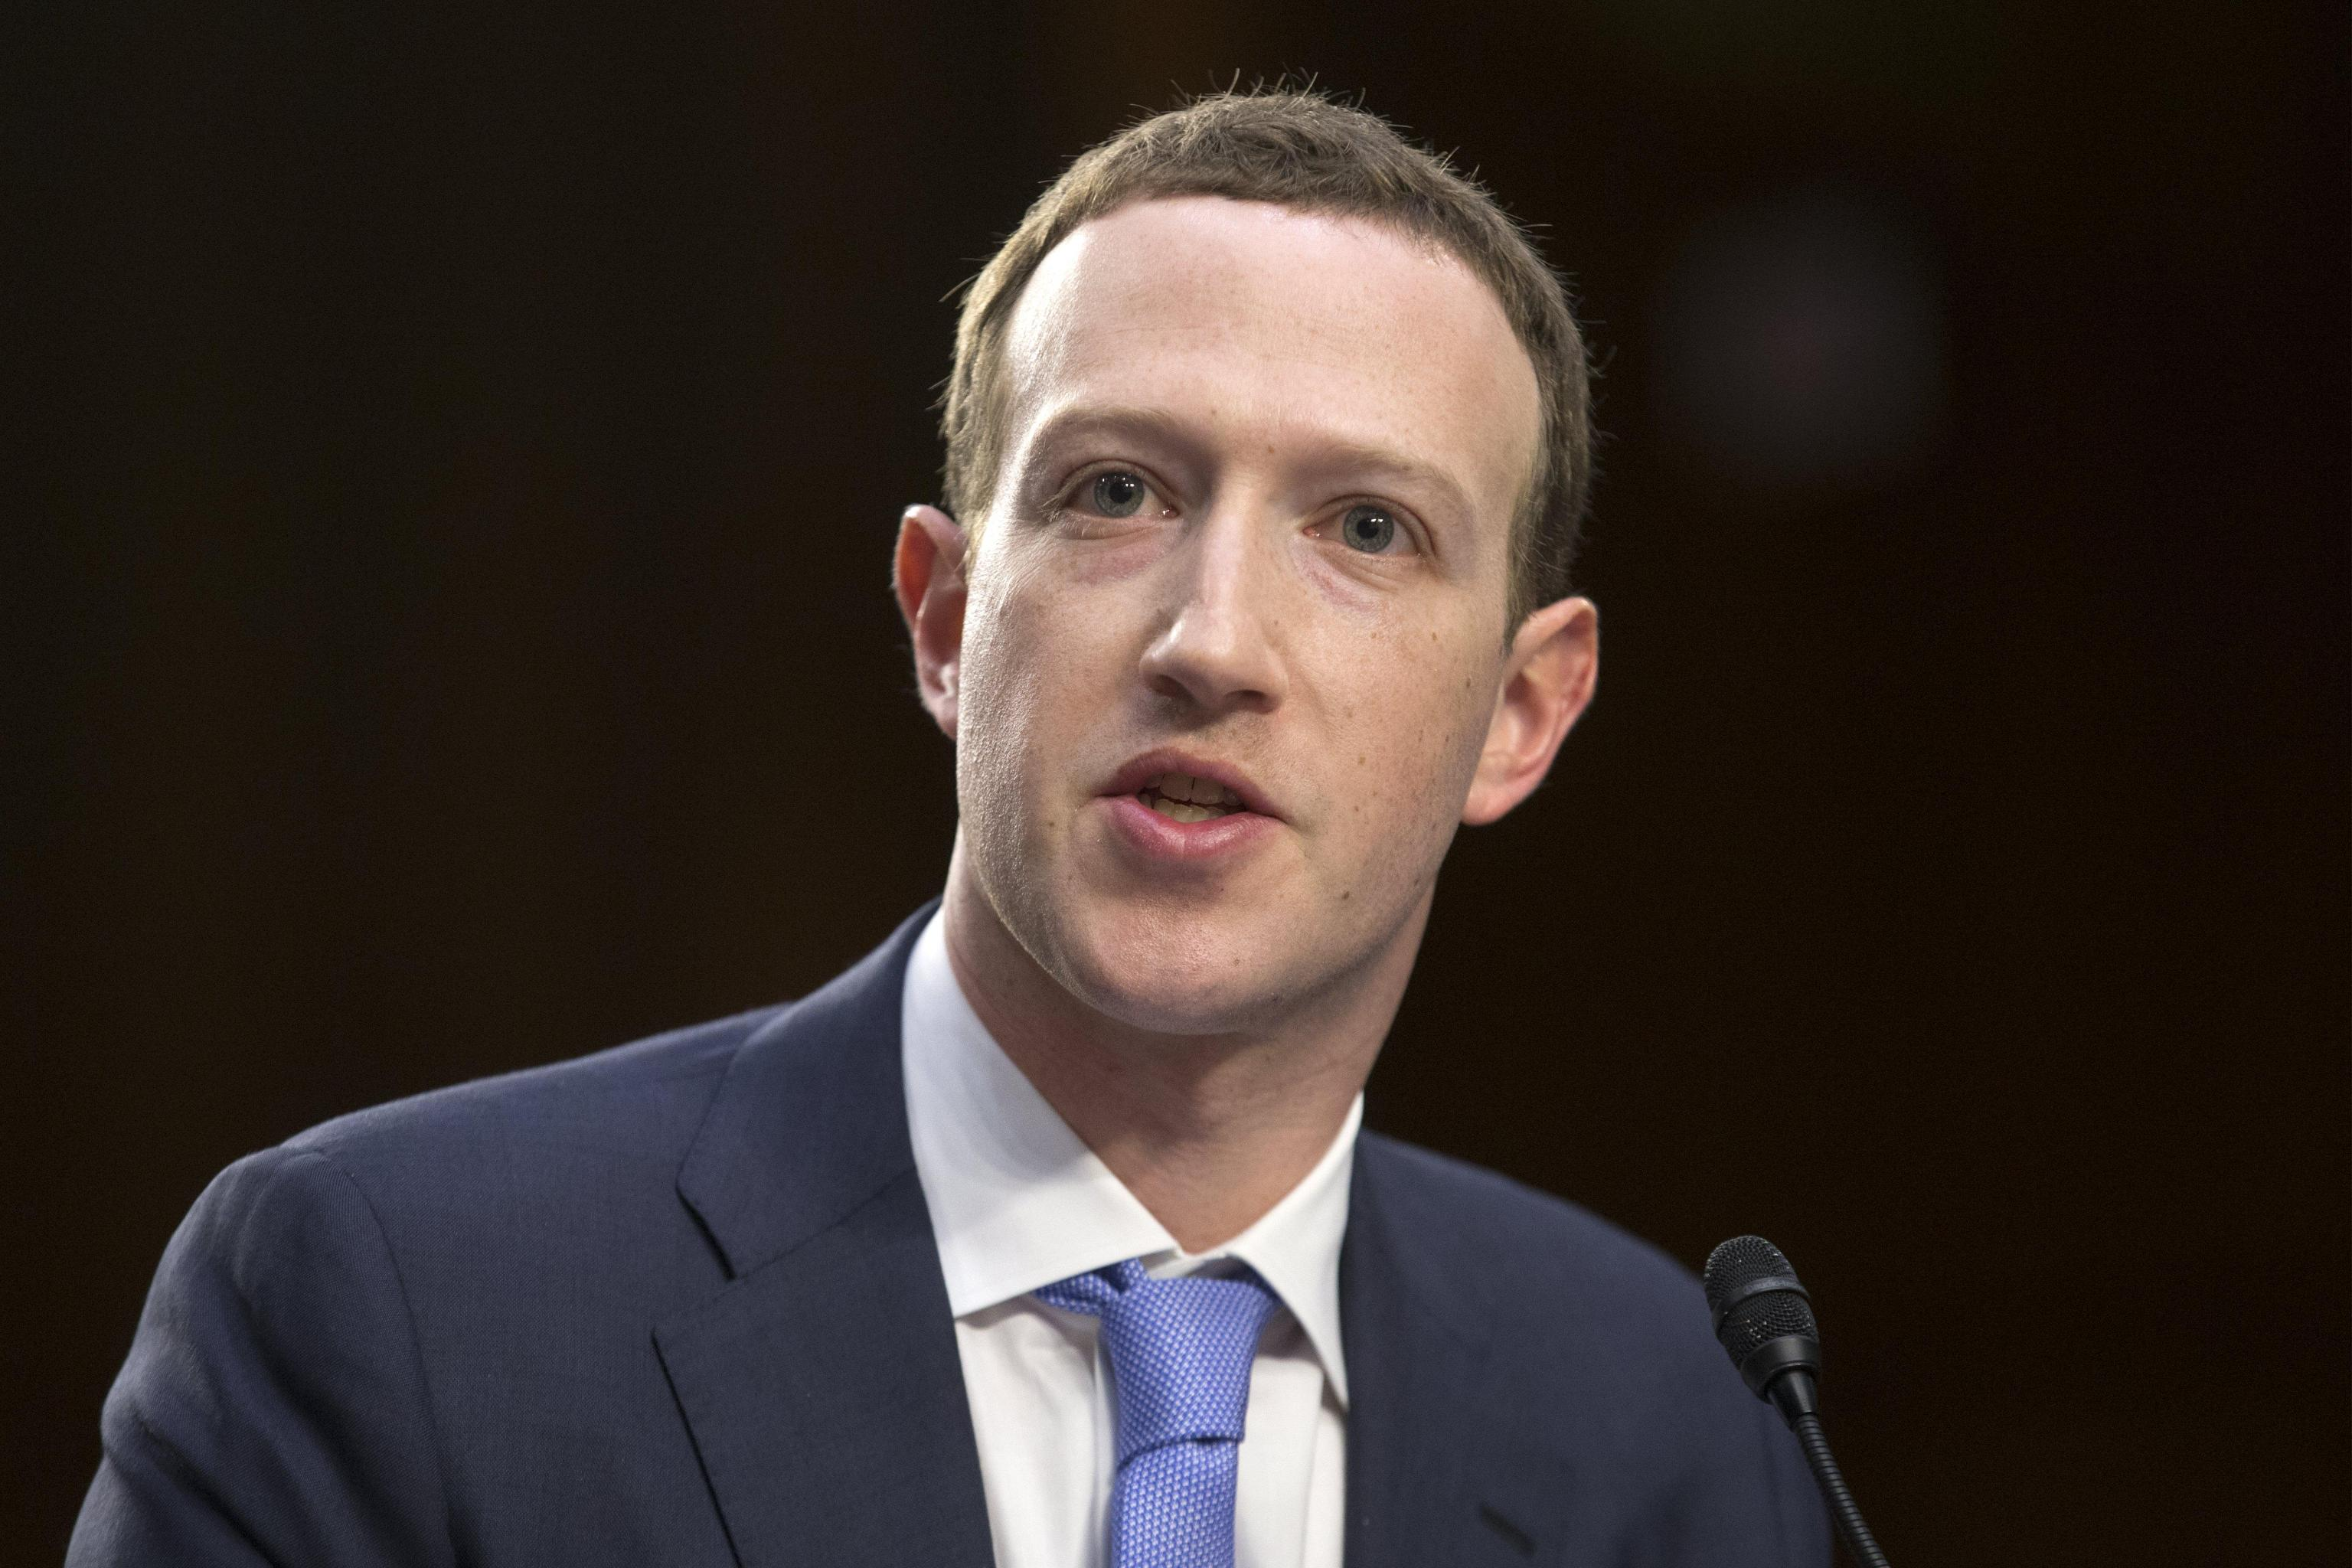 Cambridge Analytica risponde a Zuckerberg: